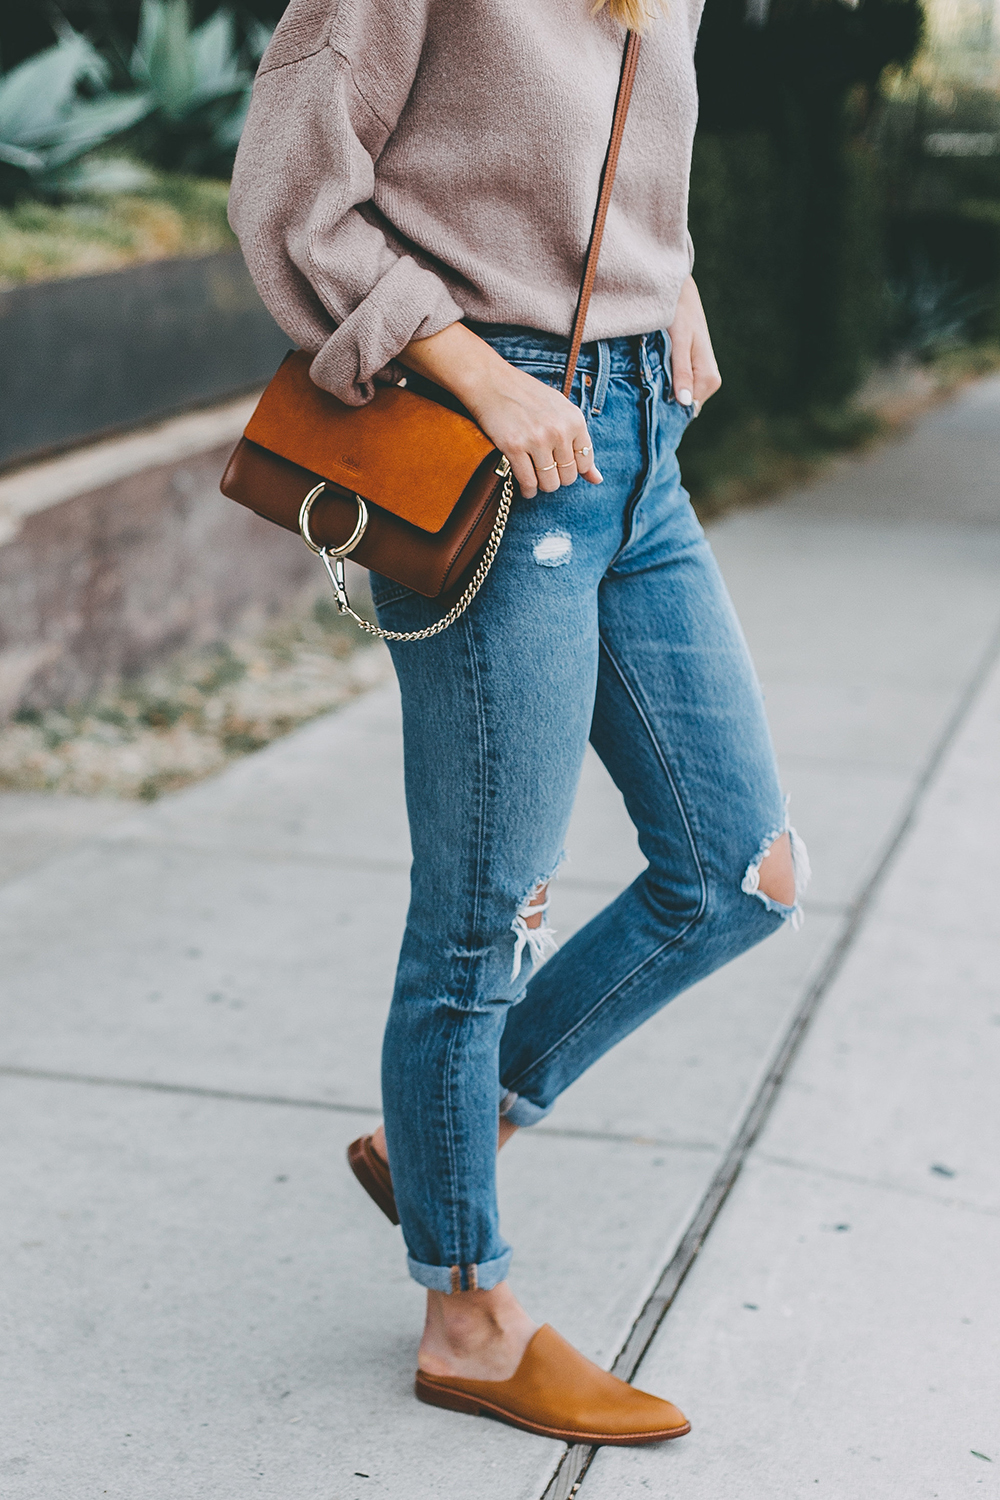 livvyland-blog-olivia-watson-mauve-mock-neck-sweater-levis-501-jeans-urban-outfitters-fortress-of-inca-tan-leather-slides-3